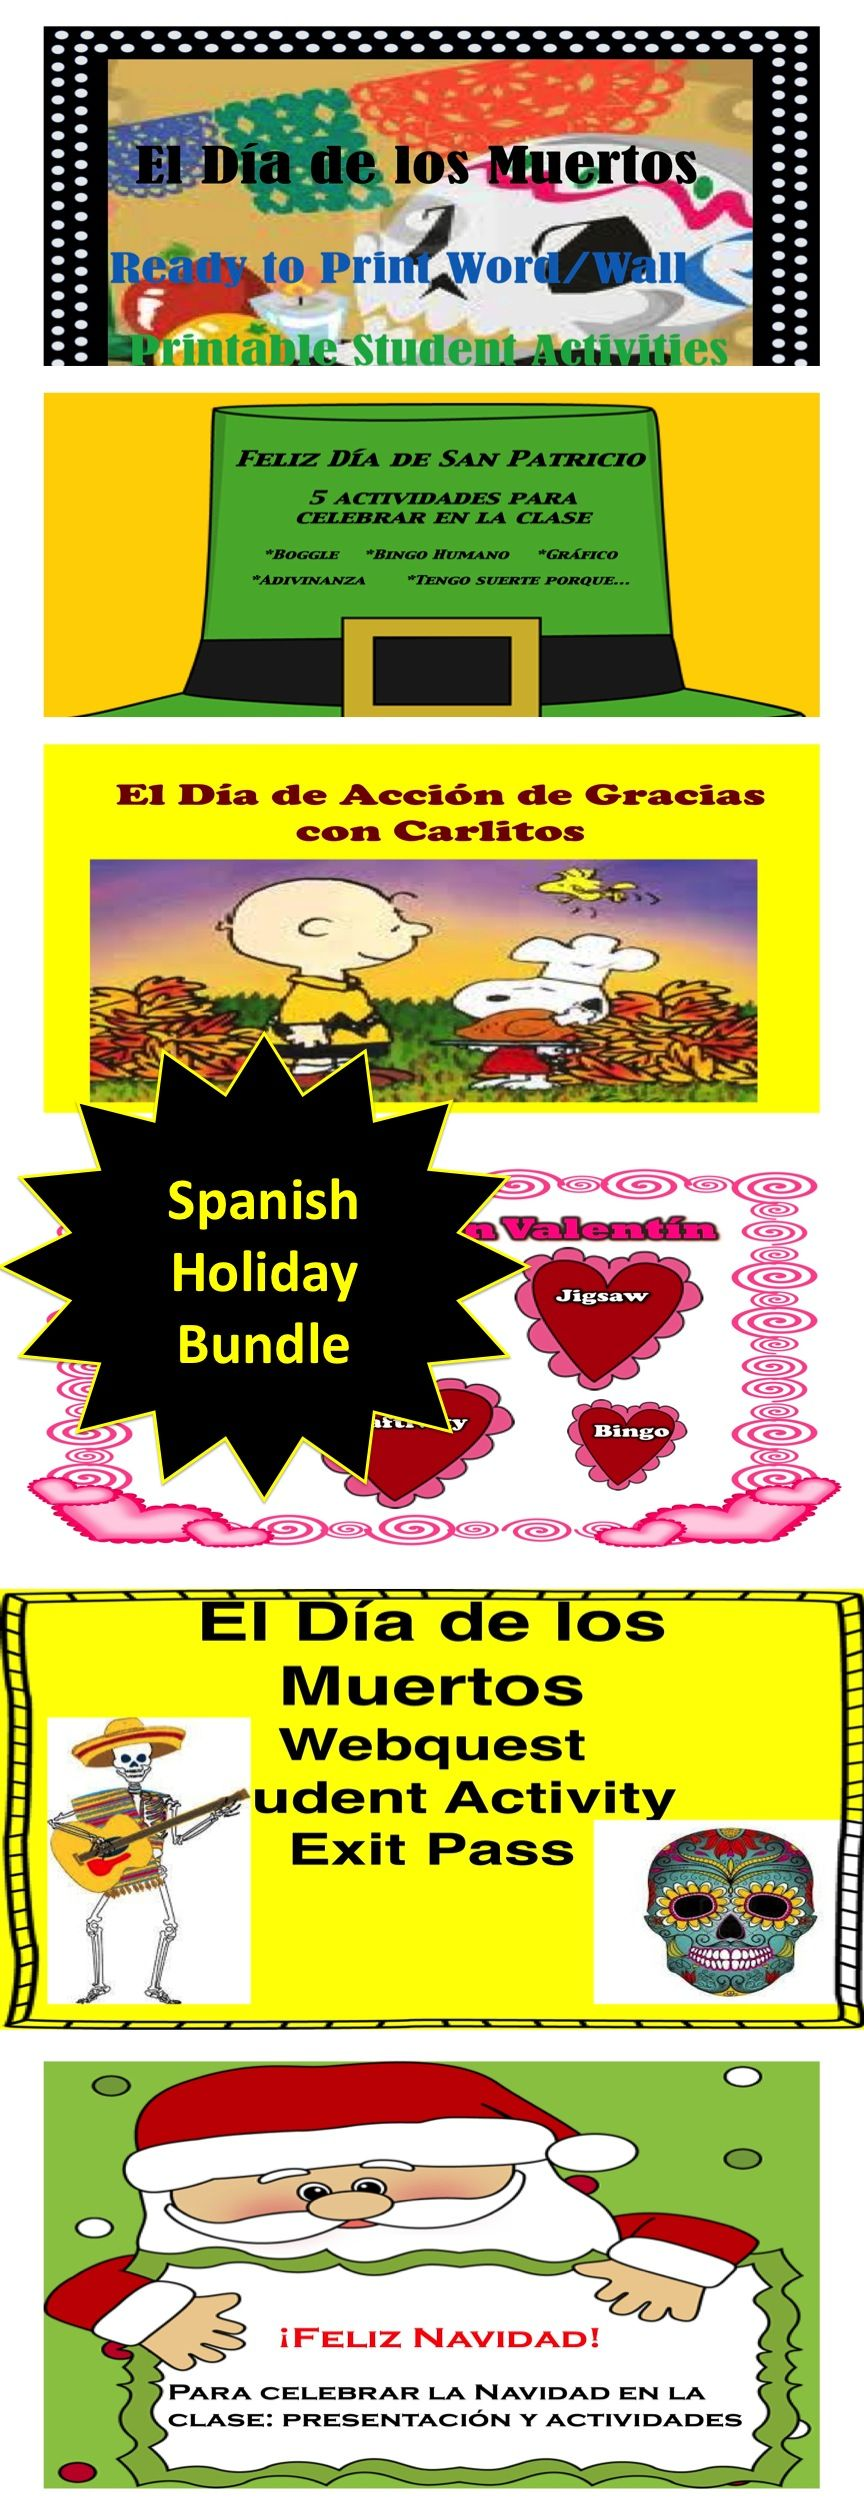 Spanish holiday Bundle. Celebrate with your students in Spanish class. 15 Lessons!